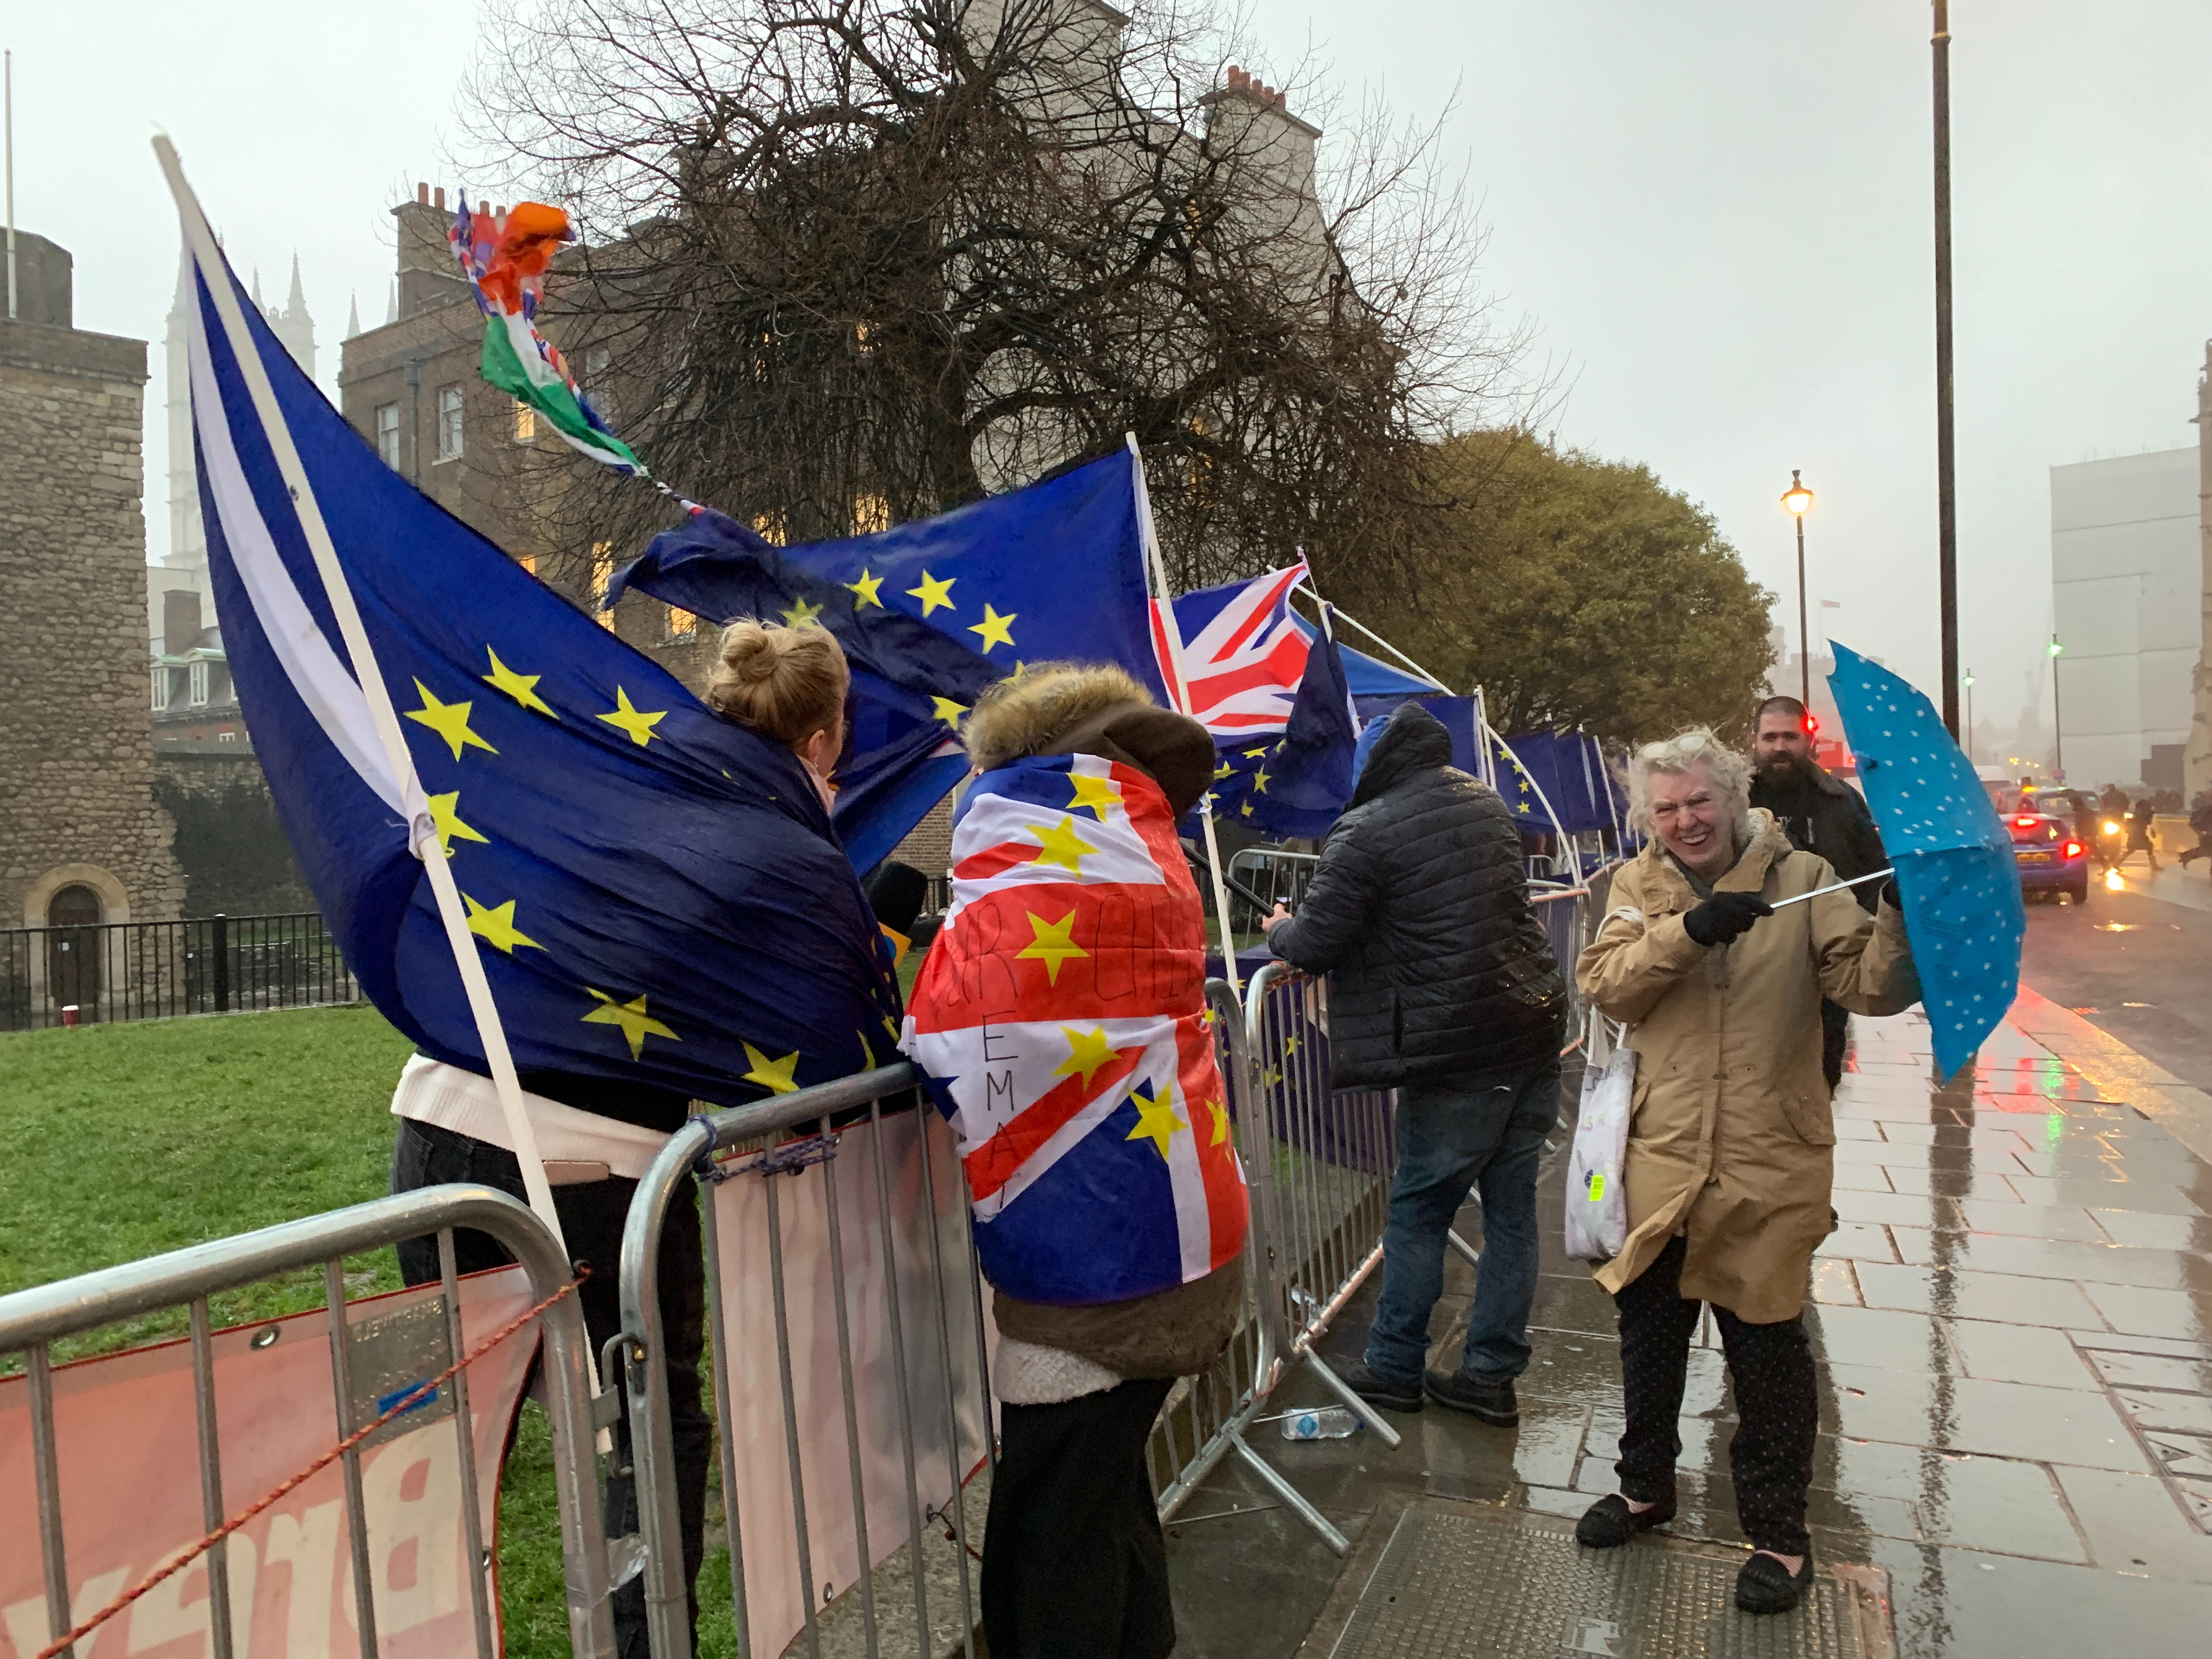 Protesters outside the Palace of Westminster in London